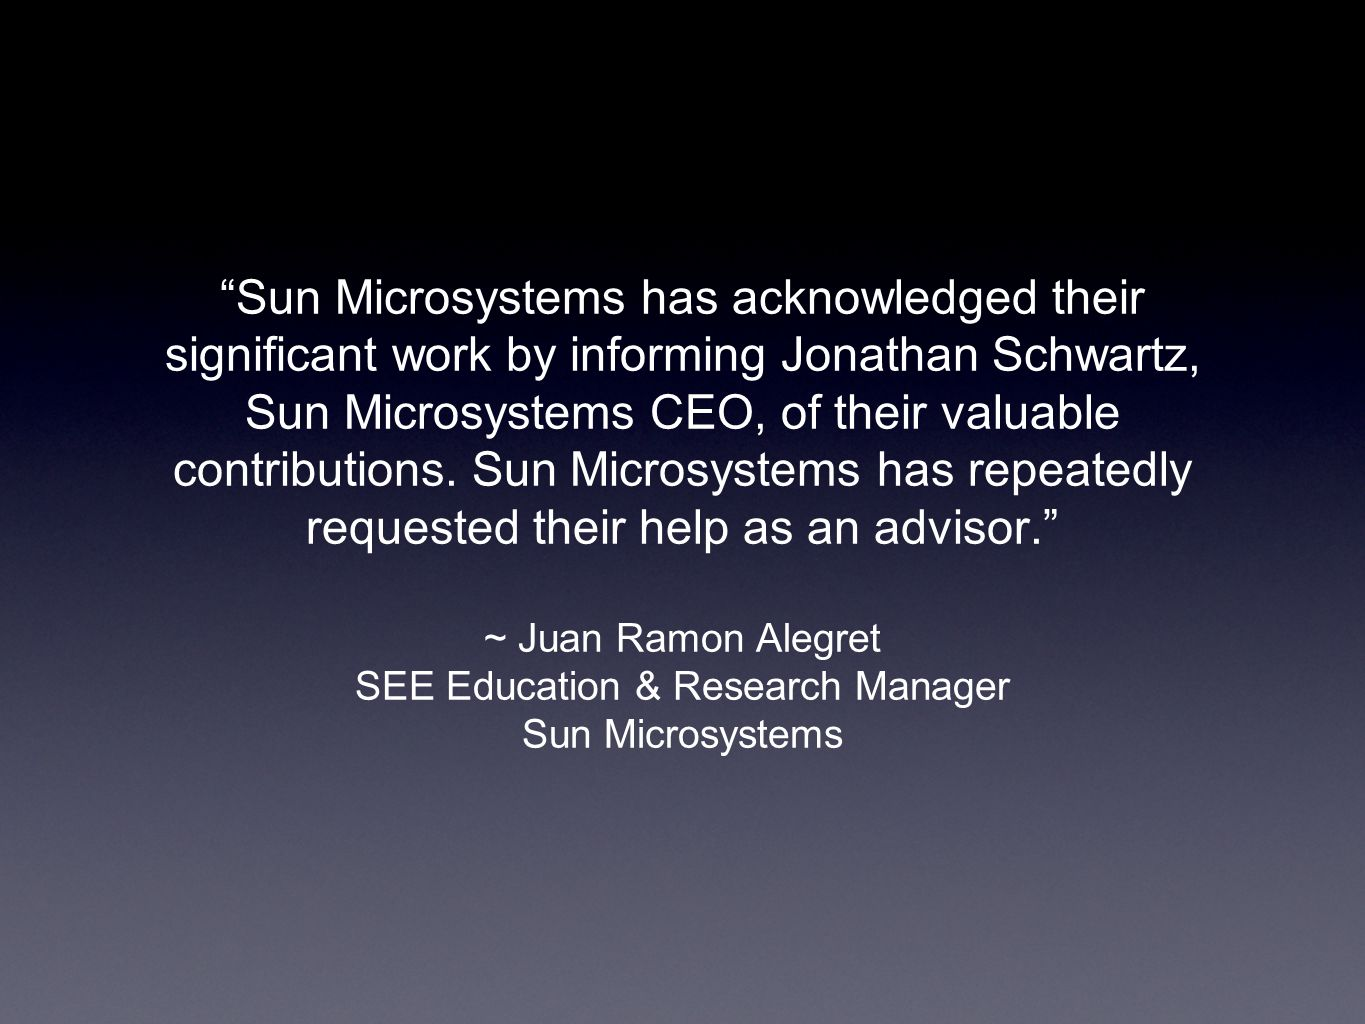 Sun Microsystems has acknowledged their significant work by informing Jonathan Schwartz, Sun Microsystems CEO, of their valuable contributions.